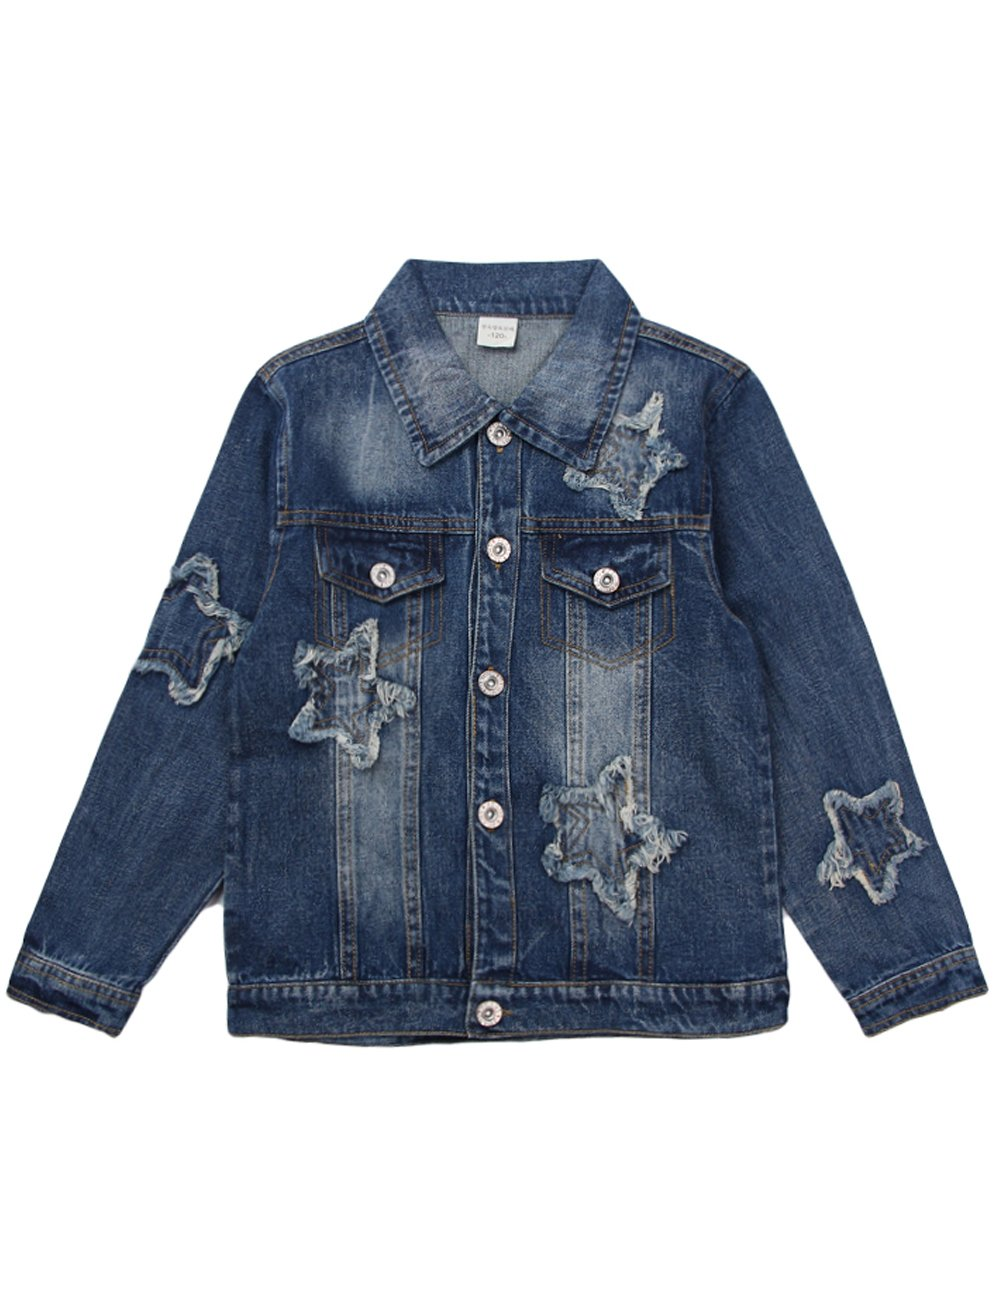 Menschwear Girl's Short Denim Jacket Stone Washed Denim(140,Blue£